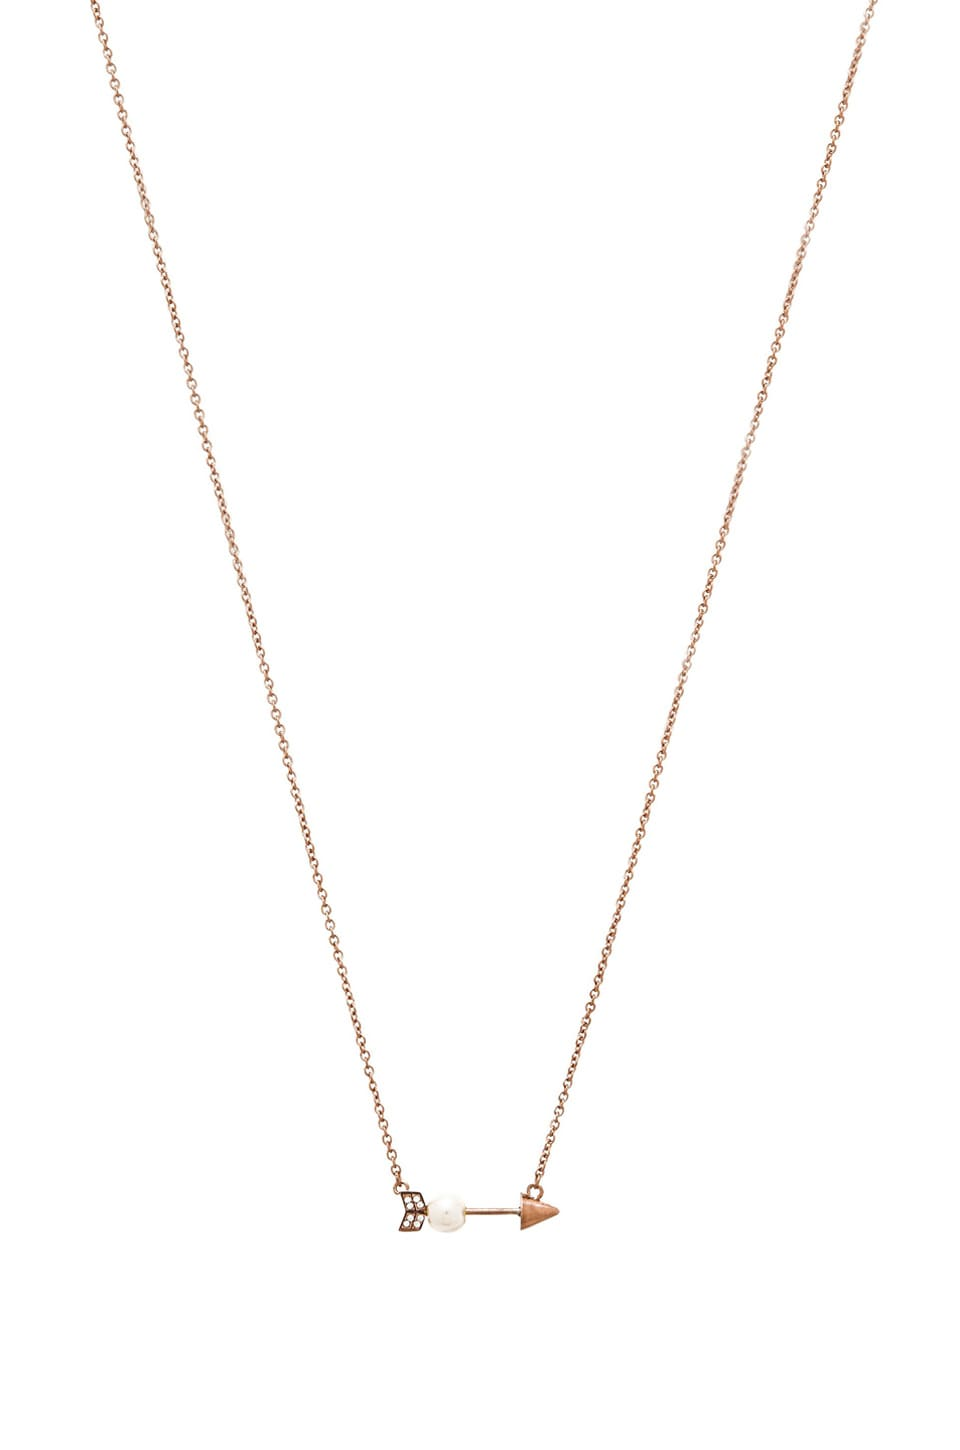 Rebecca Minkoff Pearled Arrow Necklace in Rose Gold & Pearl